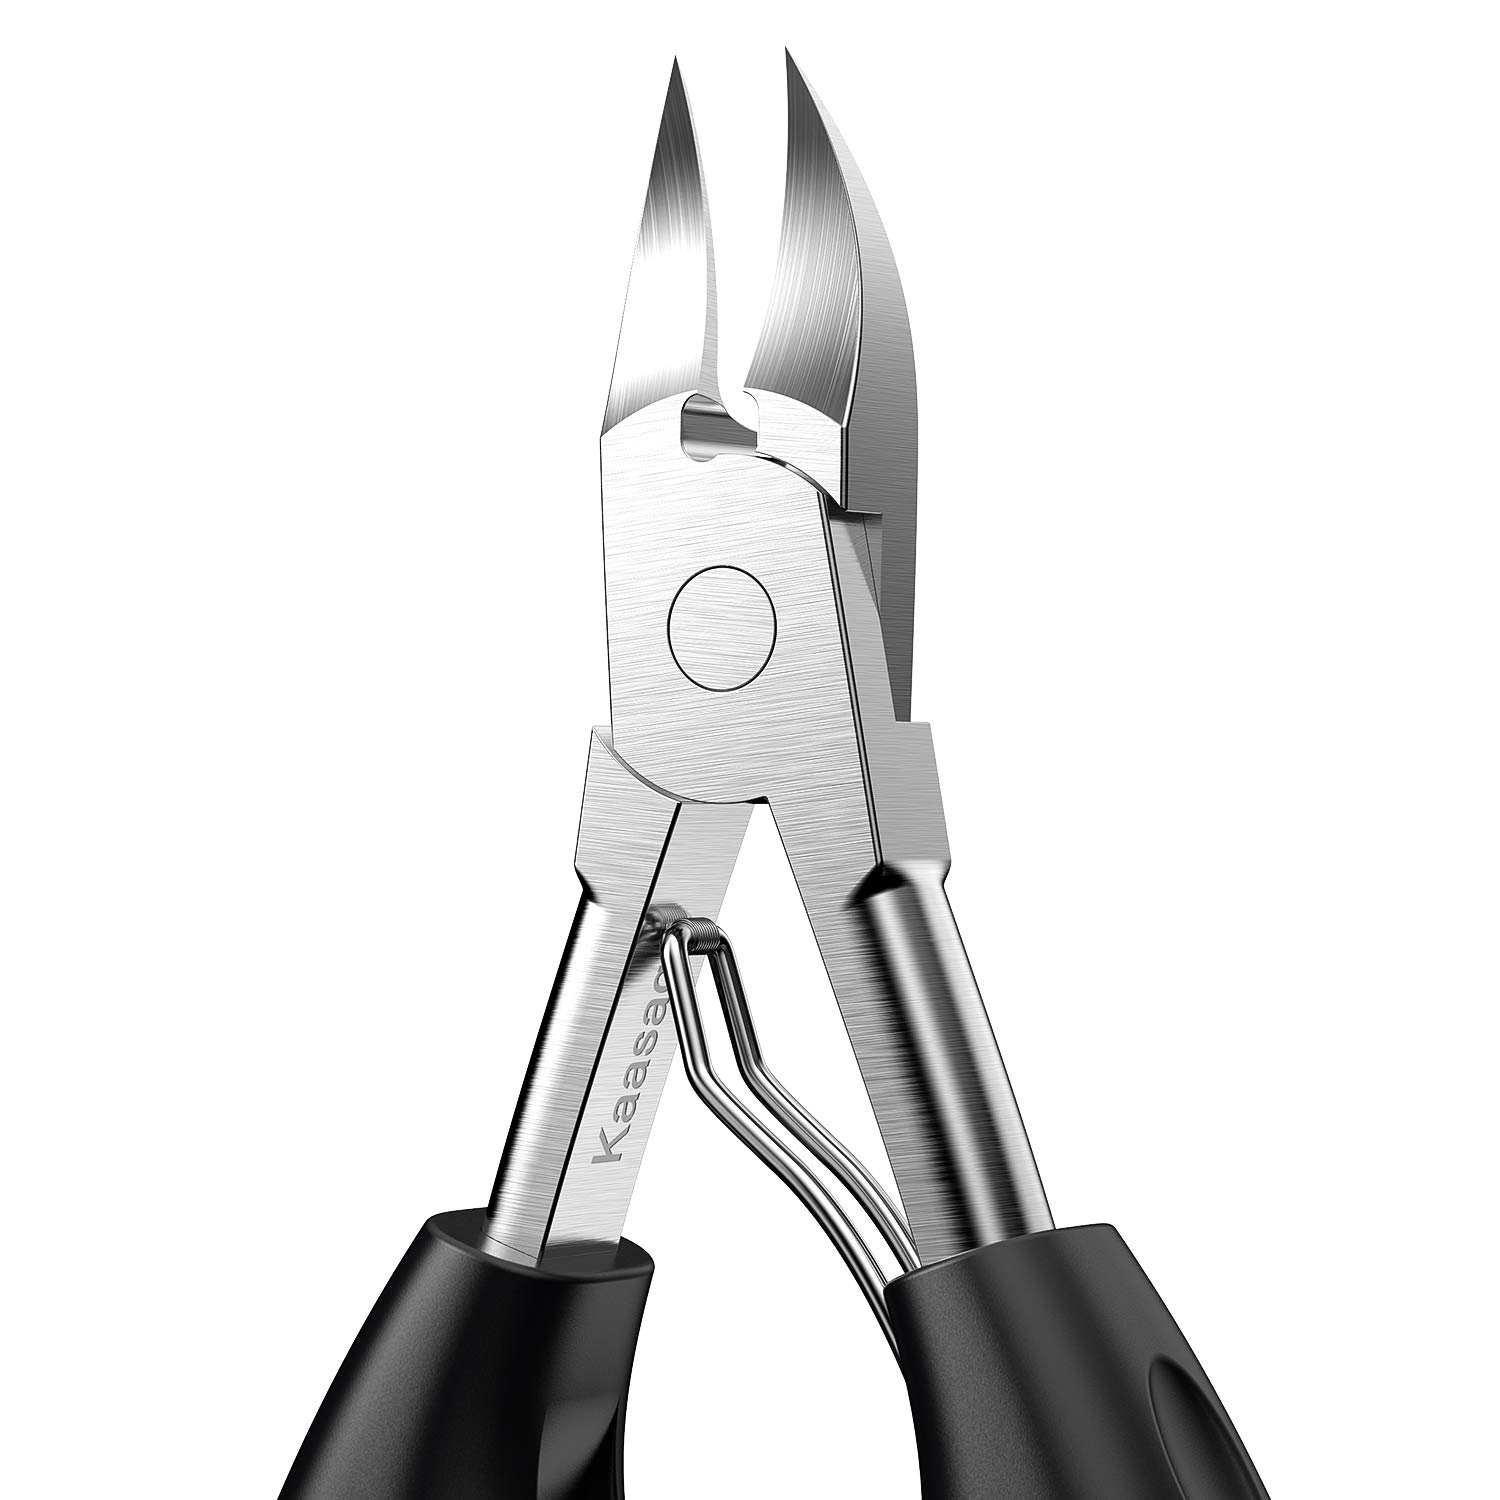 Kaasage Professional Toenail Clippers, Large Opening Double Spare Spring Design, Suitable for Thick Nails and Ingrown Nail Clippers for Everyone and Elderly.: Beauty